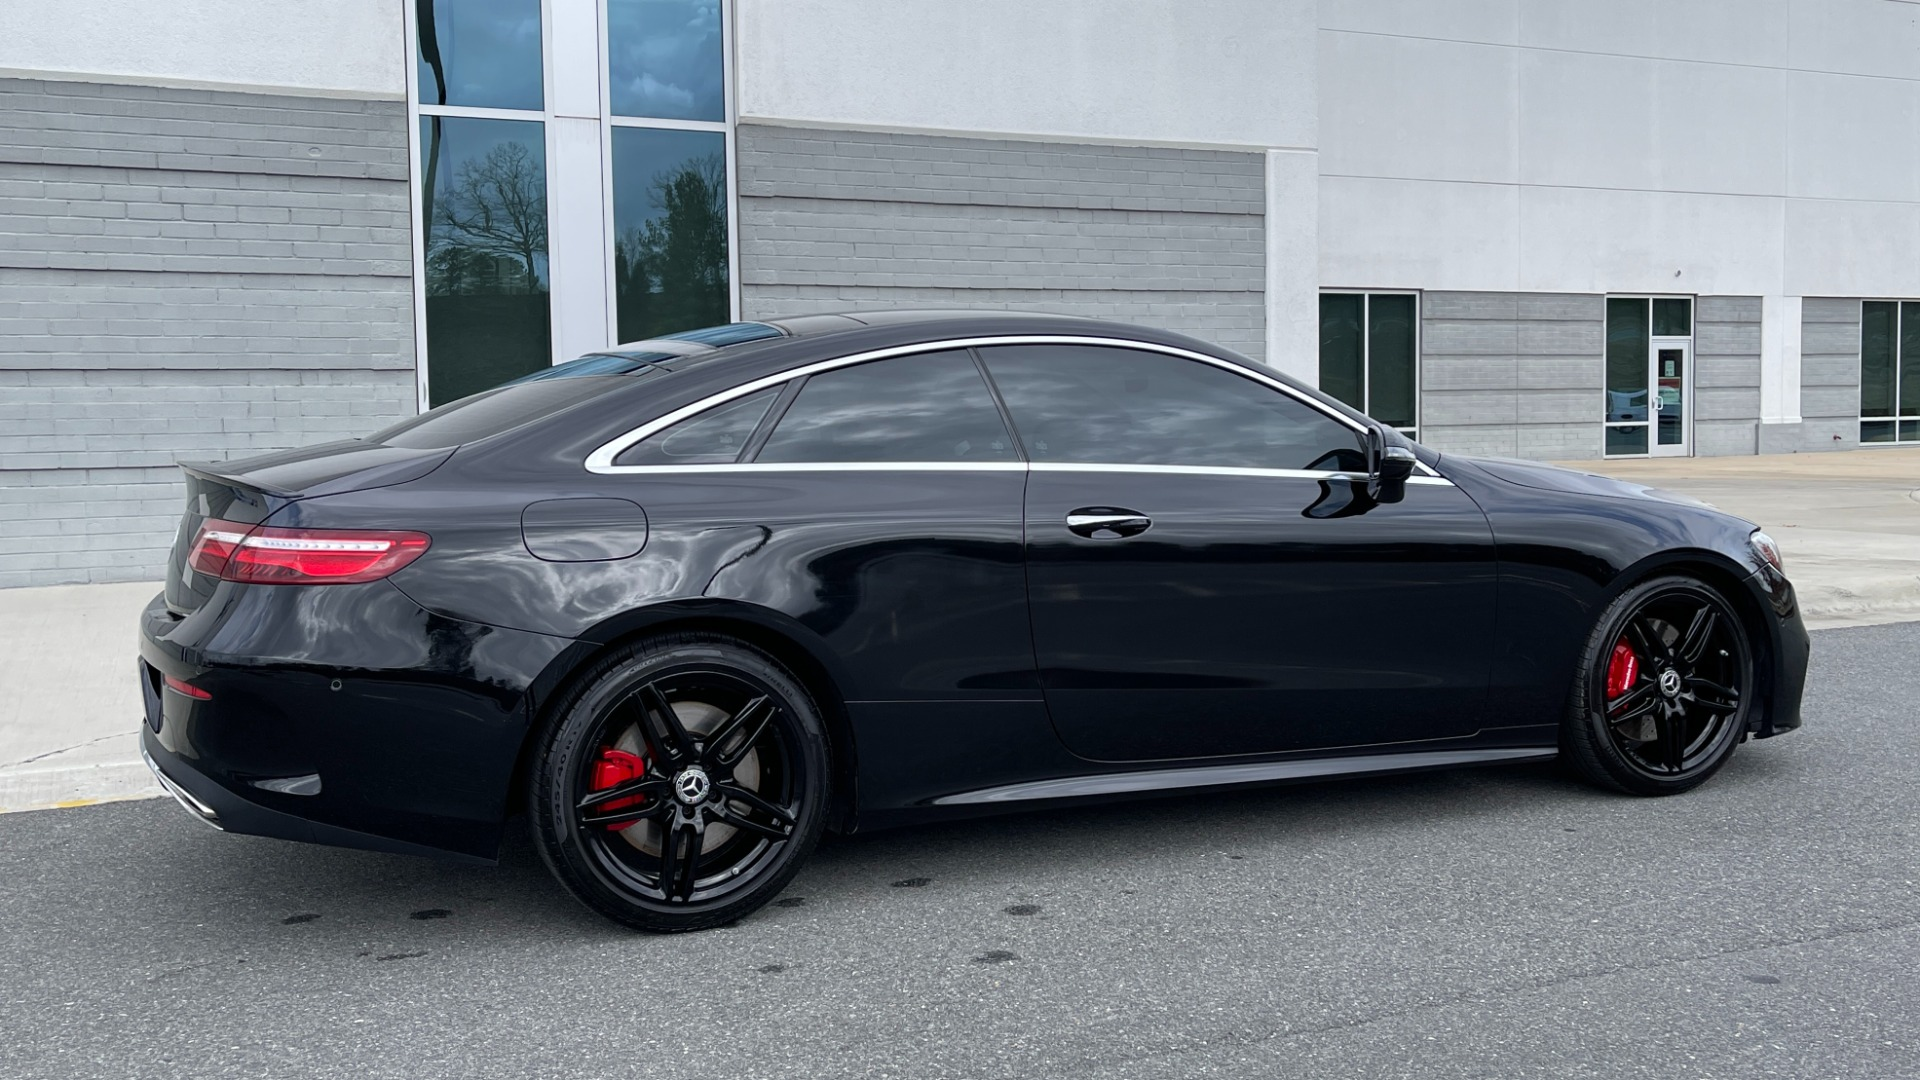 Used 2019 Mercedes-Benz E-CLASS E 450 PREMIUM / AMG LINE / PARK ASST / BSA / BURMESTER for sale $49,995 at Formula Imports in Charlotte NC 28227 8